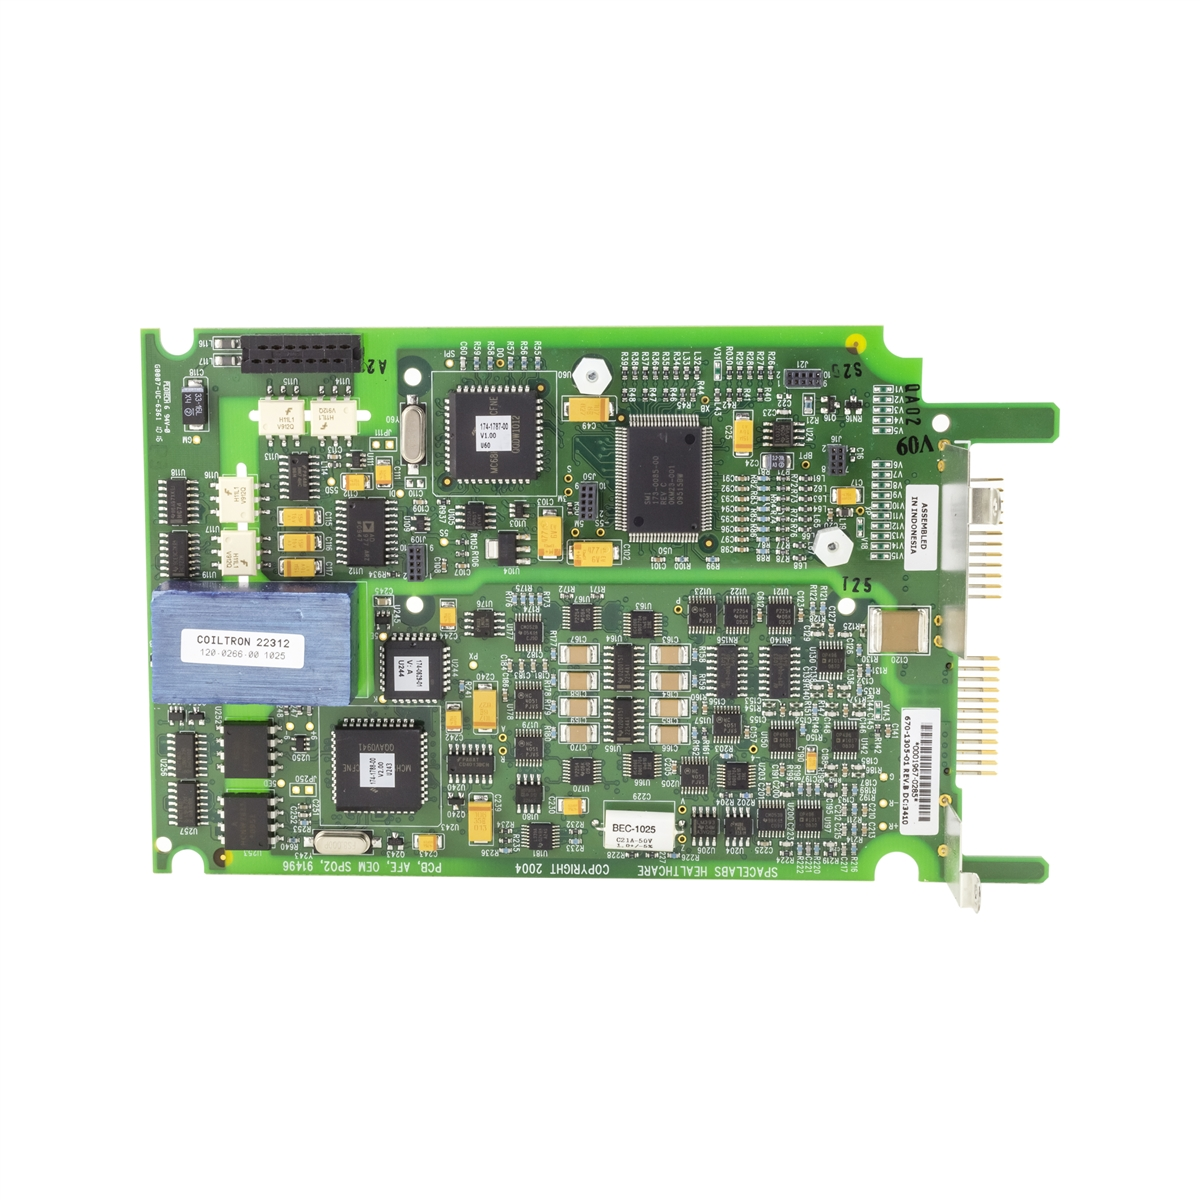 Pcba670 1305 01afeoem Spo291496 Computer Technology Circuit Board With Multiple Electronic Components Refurbished By Pacmed